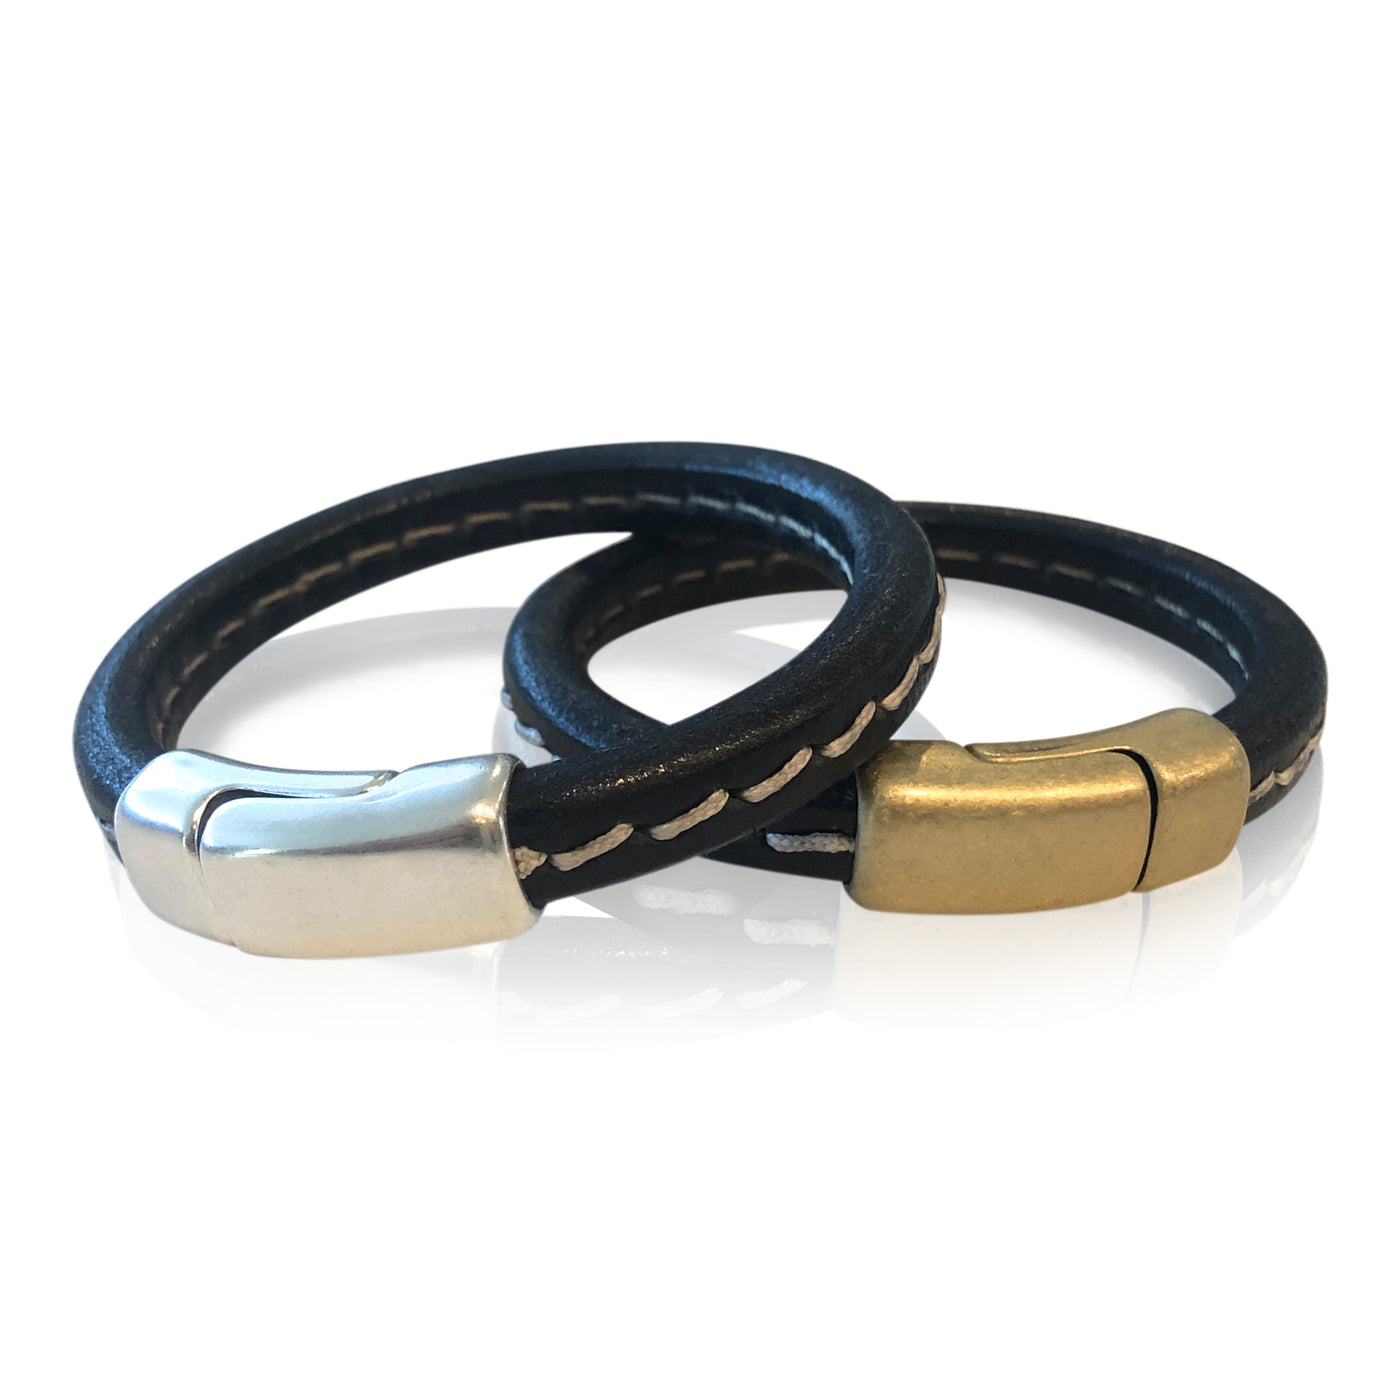 BR7 BKST - Stitched Black Leather Bracelet with Round Magnetic Clasp